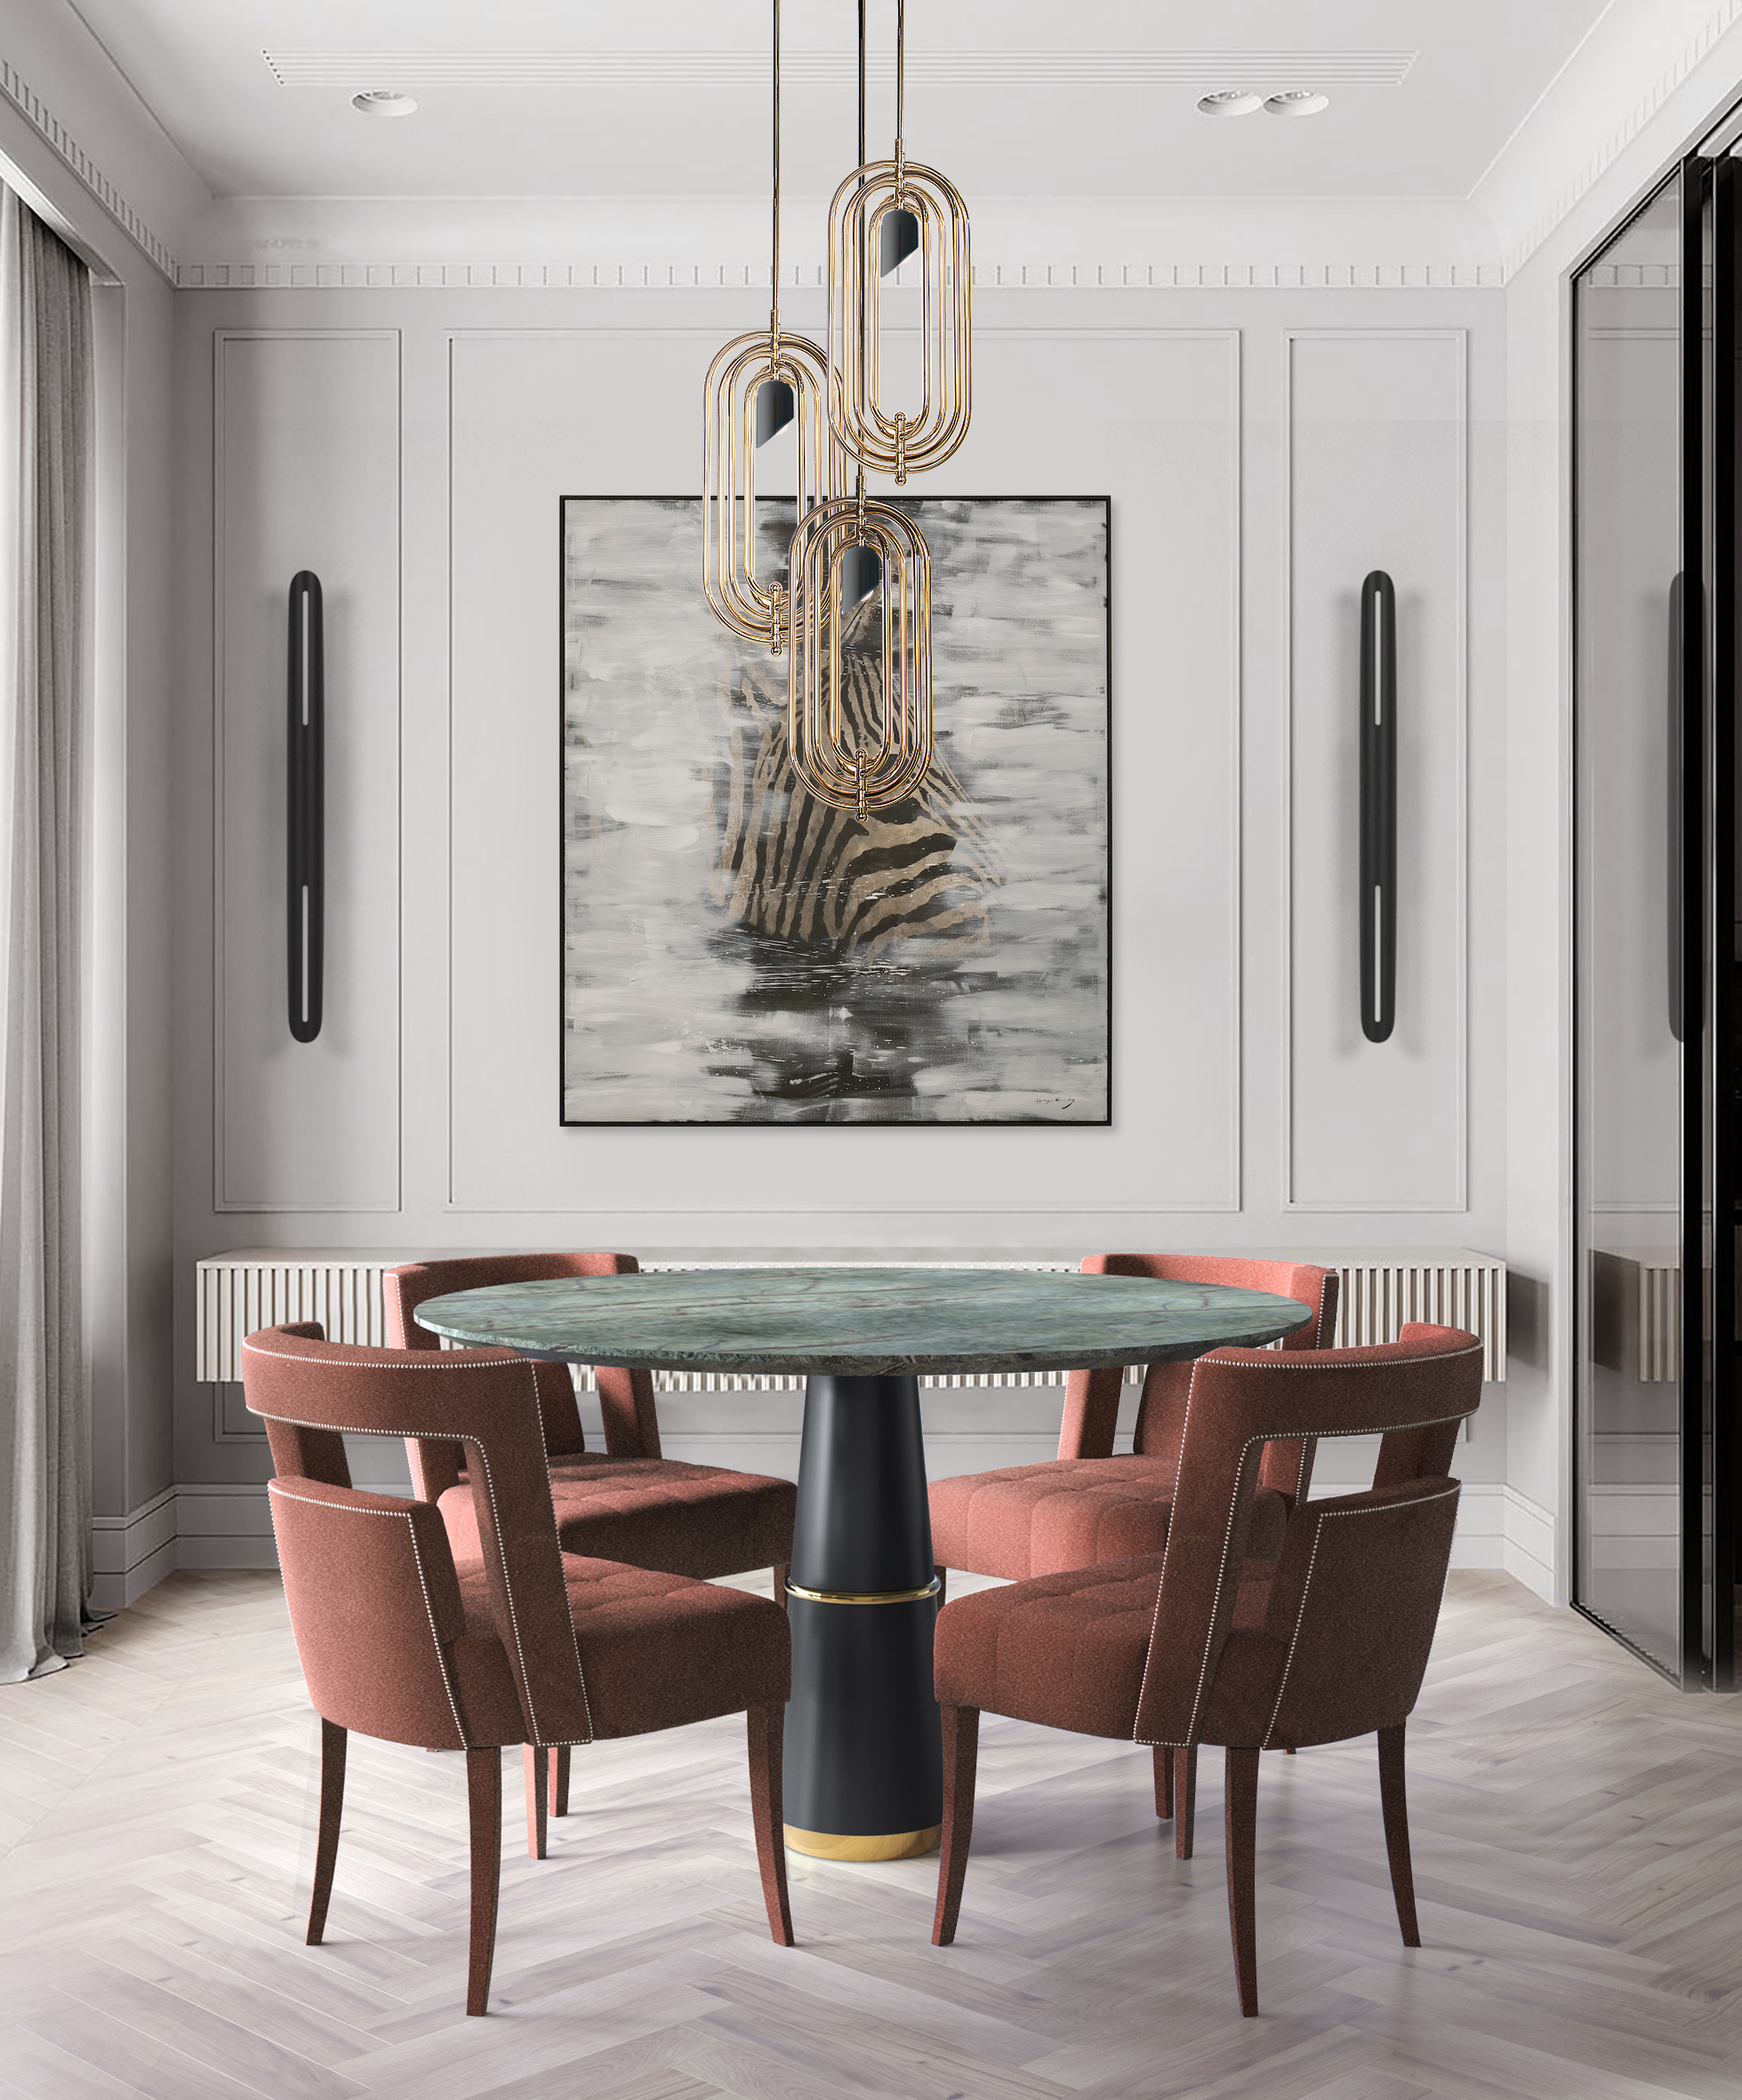 Dining chairs: The Best Upholstered Chairs For Your Dining Room dining chairs Dining chairs: The Best Upholstered Chairs For Your Dining Room BB agra round naj dining